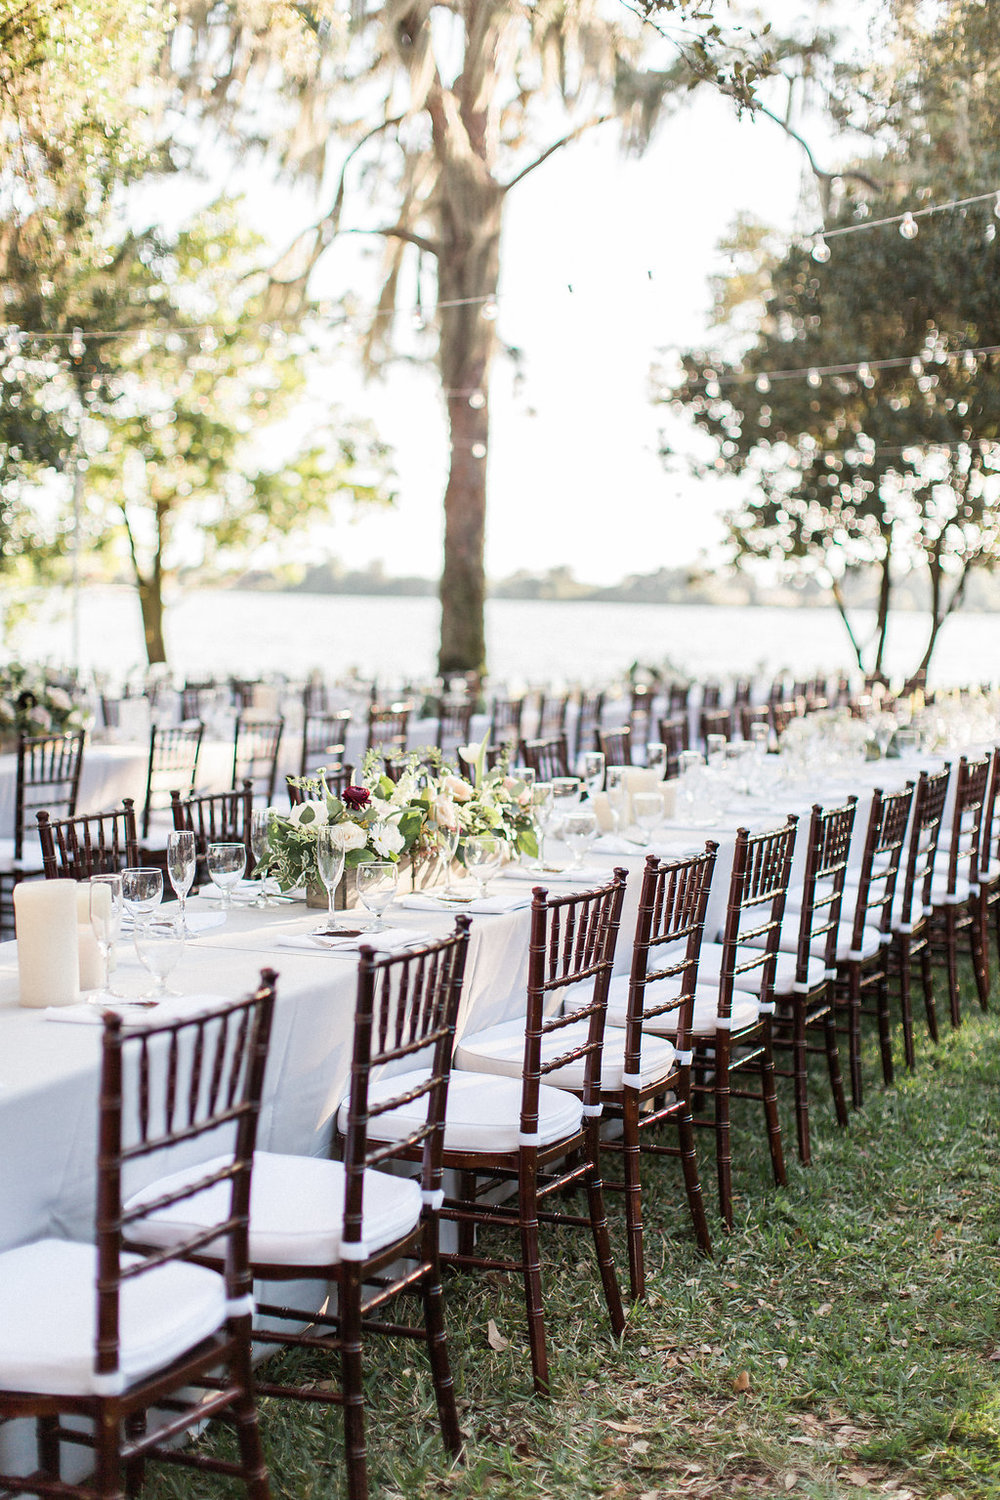 Naples-Florida-wedding-Planner-florsit-Elleson-Events